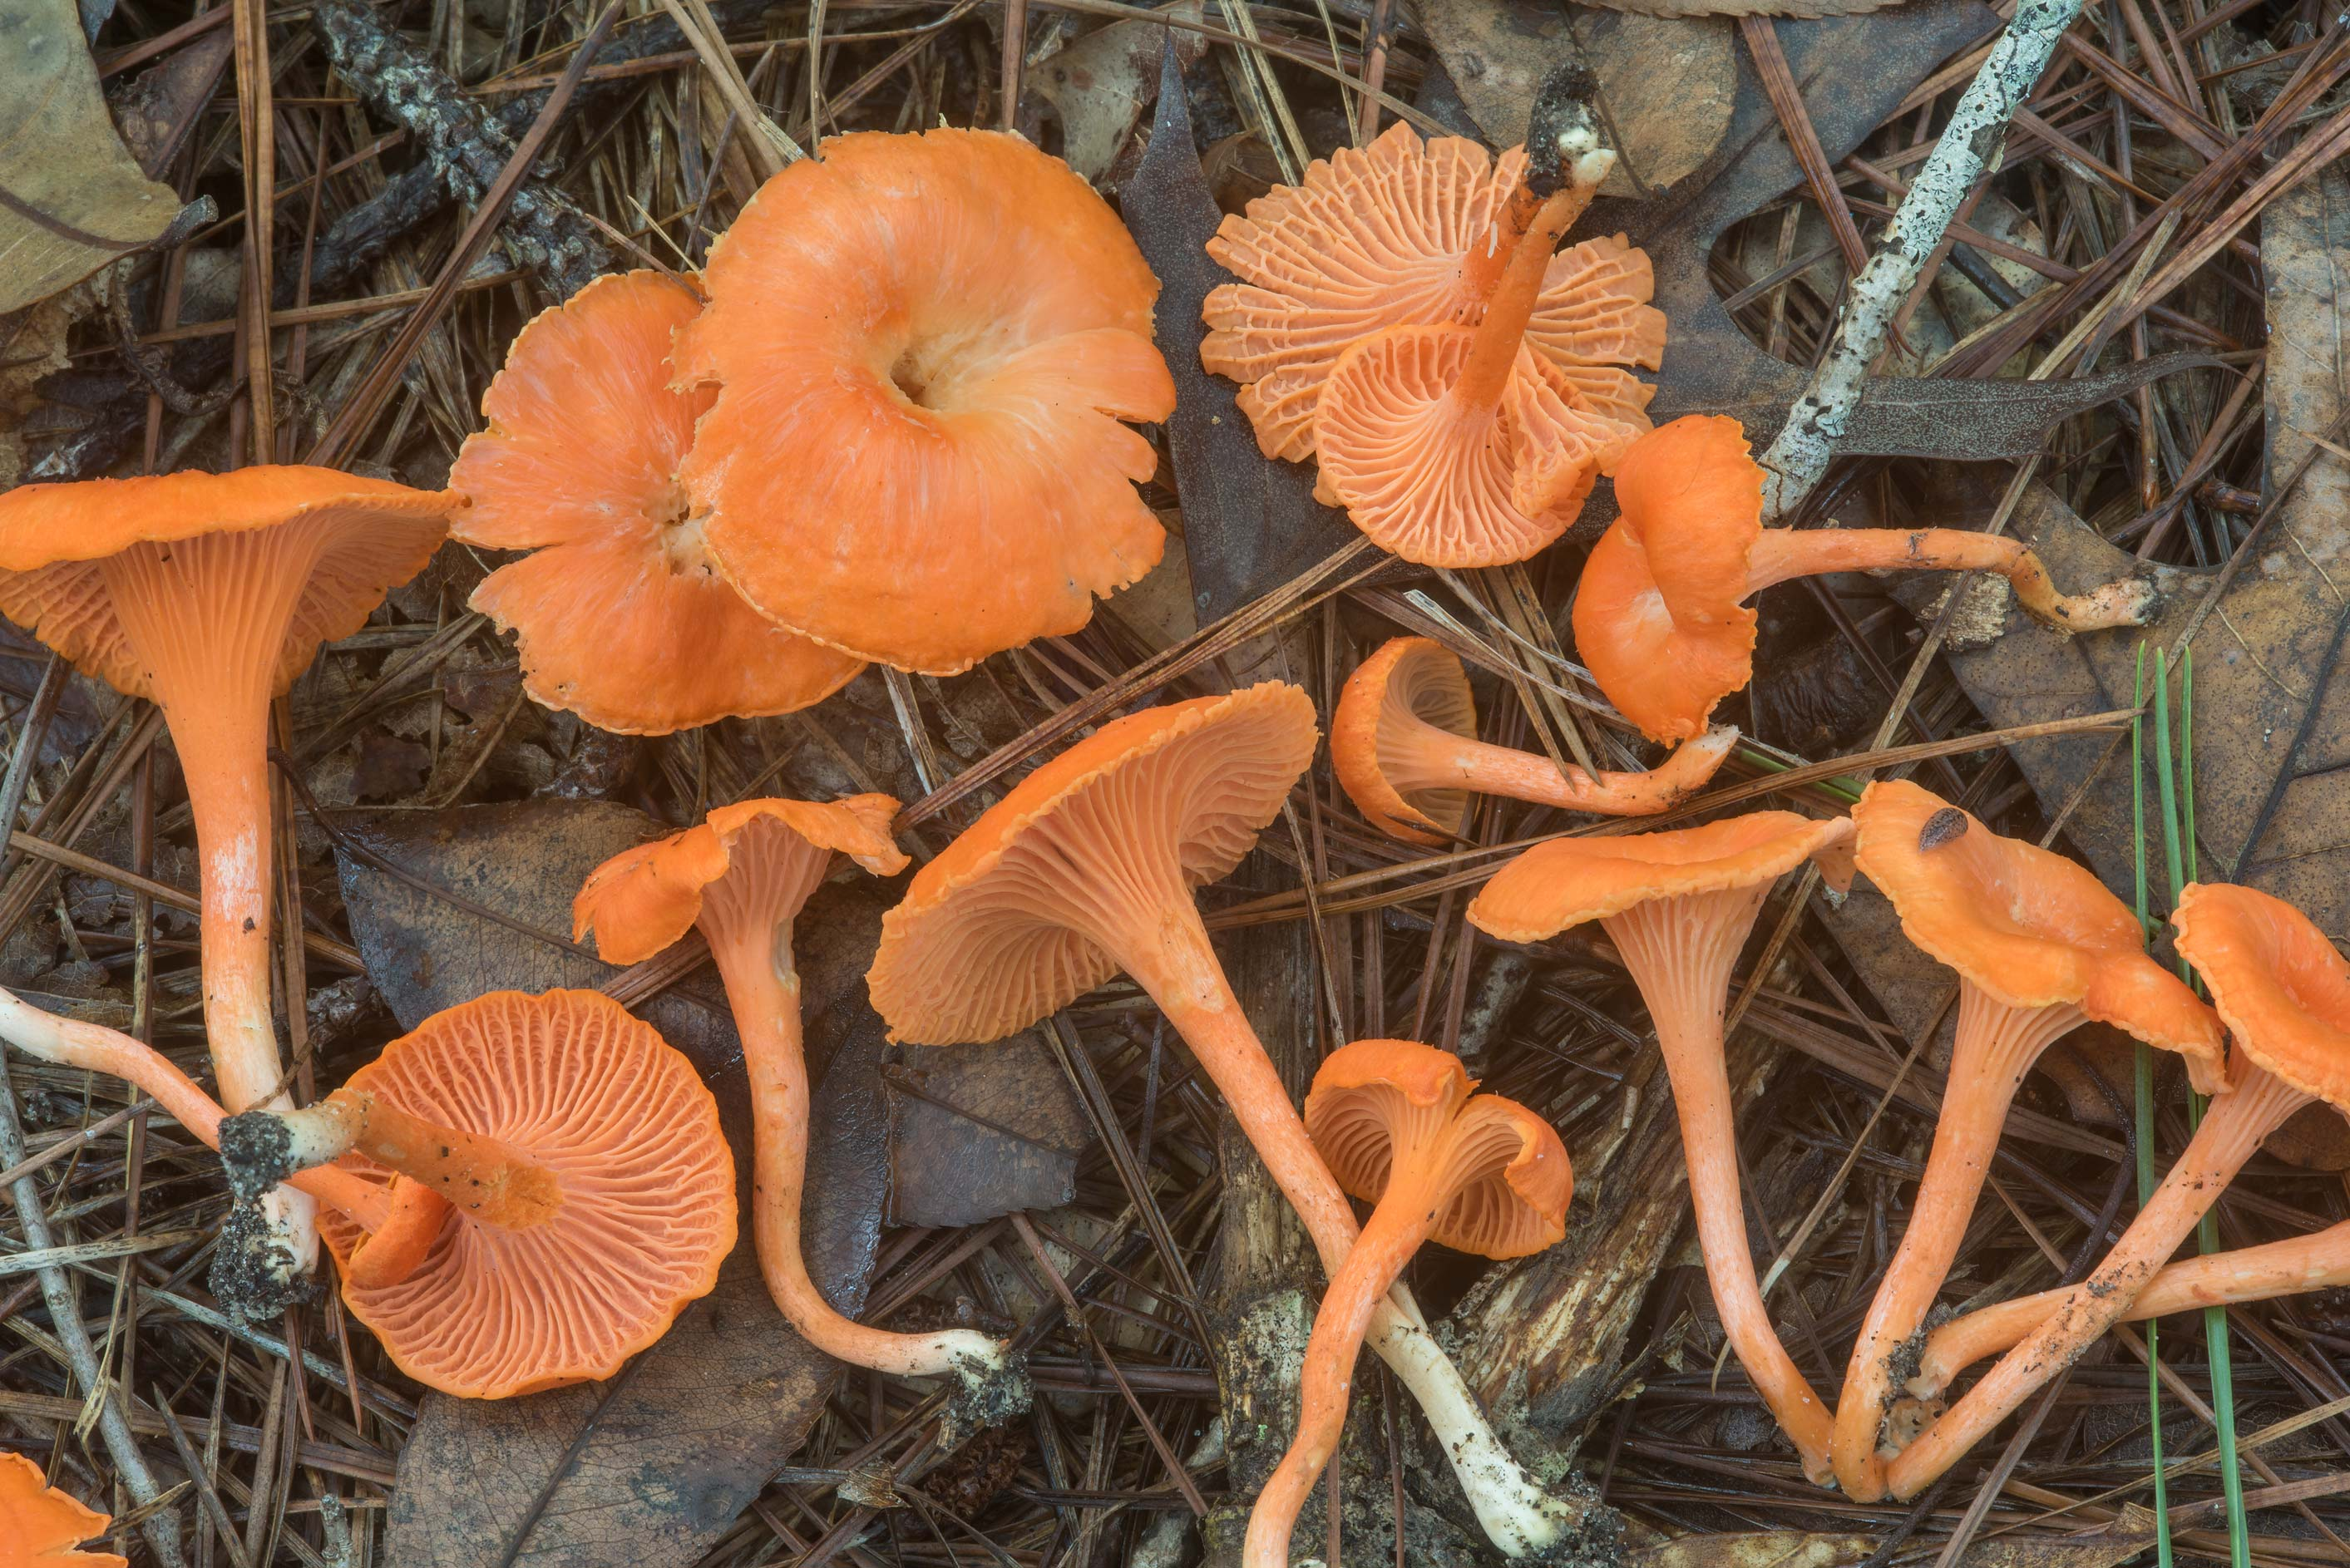 Cinnabar-red chanterelle mushrooms (Cantharellus...National Forest near Huntsville. Texas